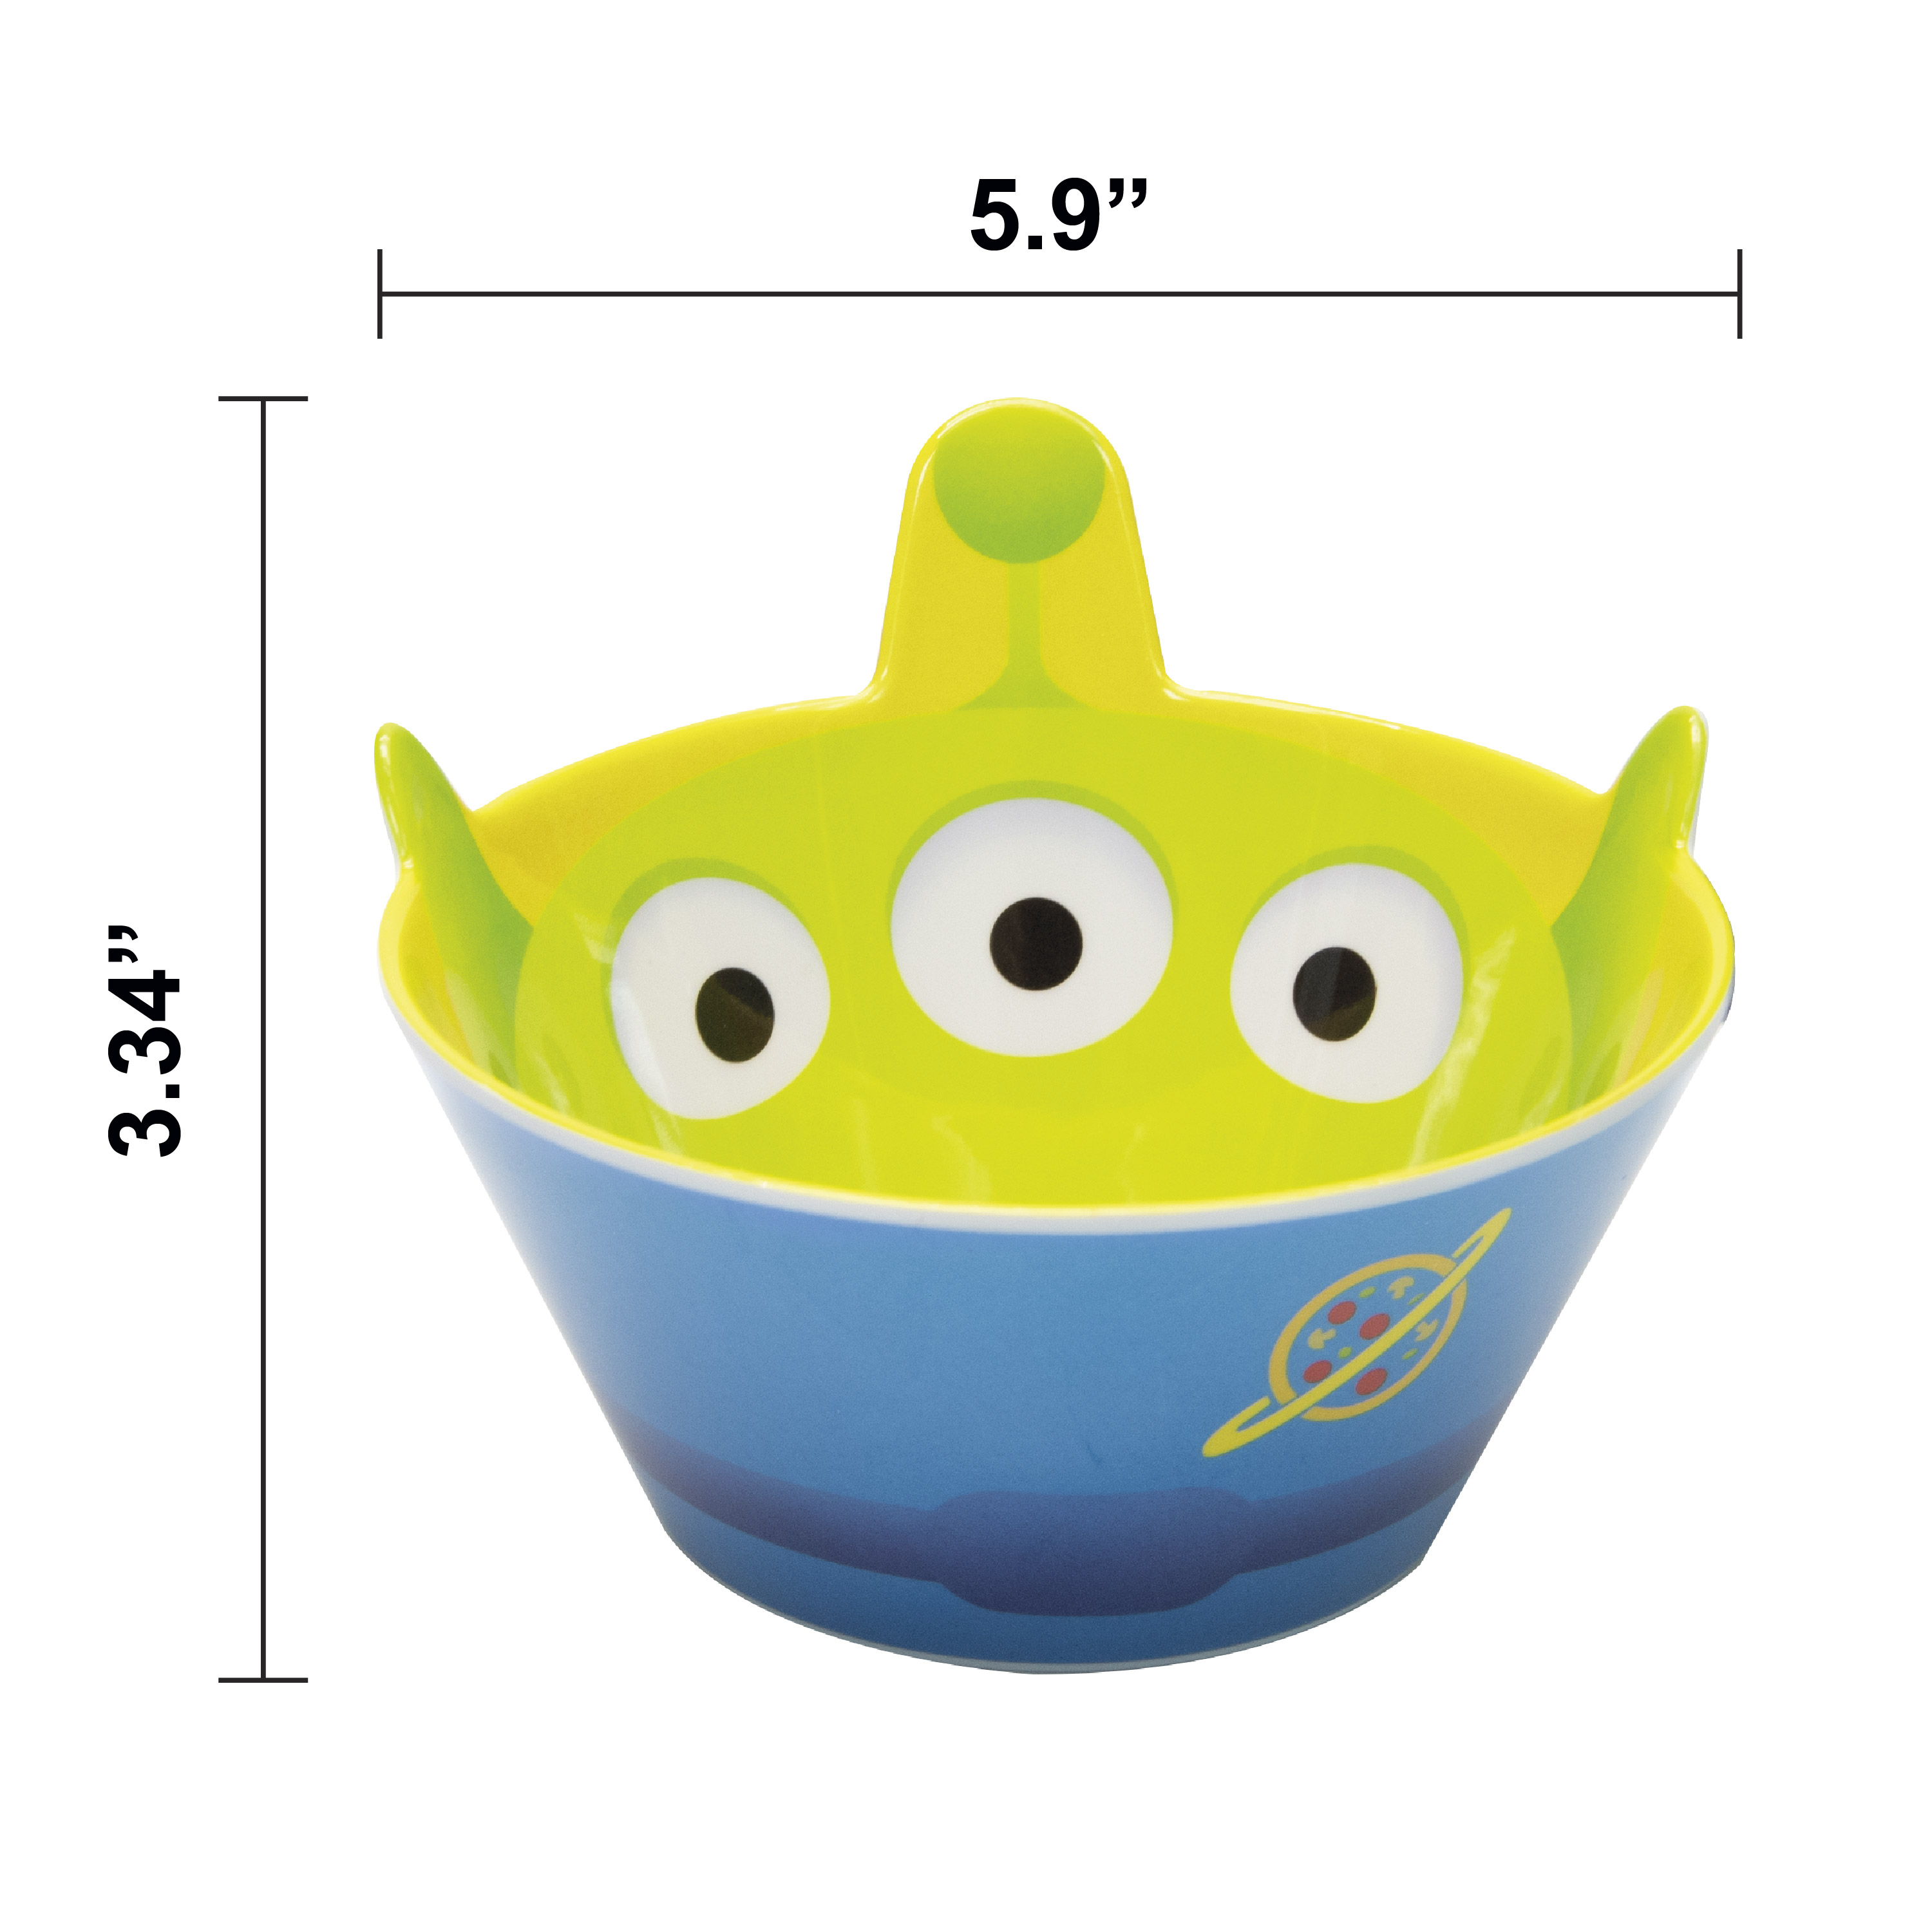 Disney and Pixar Plate and Bowl Set, Aliens, 2-piece set slideshow image 7